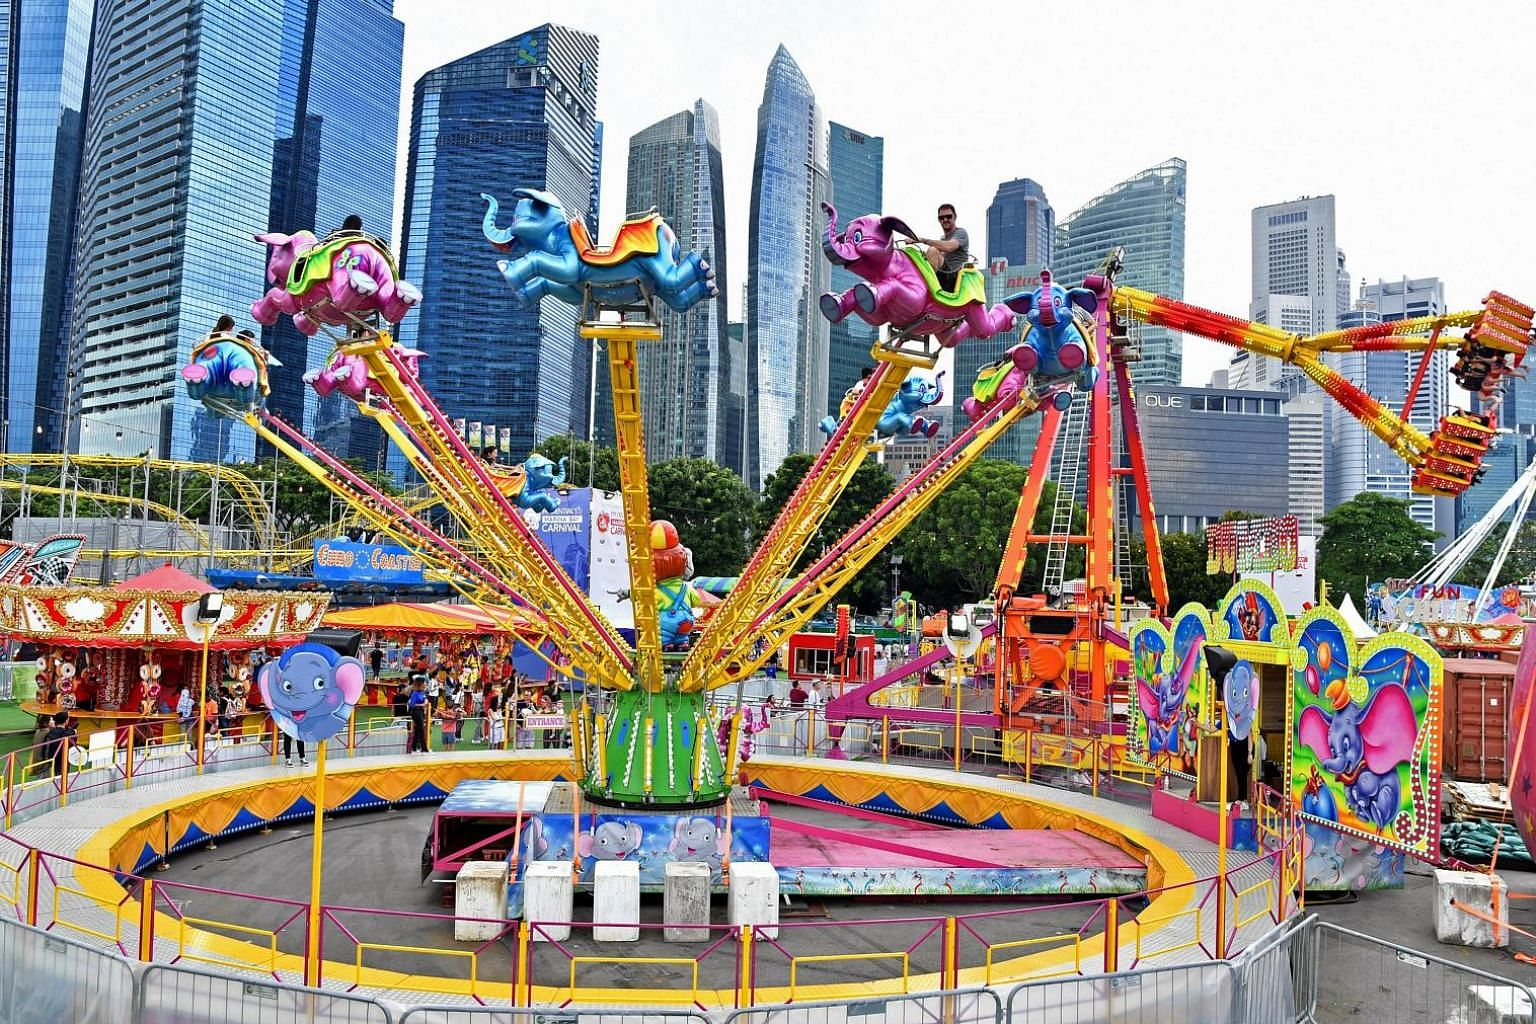 The second edition of the Prudential Marina Bay Carnival kicked off on Saturday and runs until March 24. Last year's event drew 1.4 million visitors and witnessed more than 30 marriage proposals.